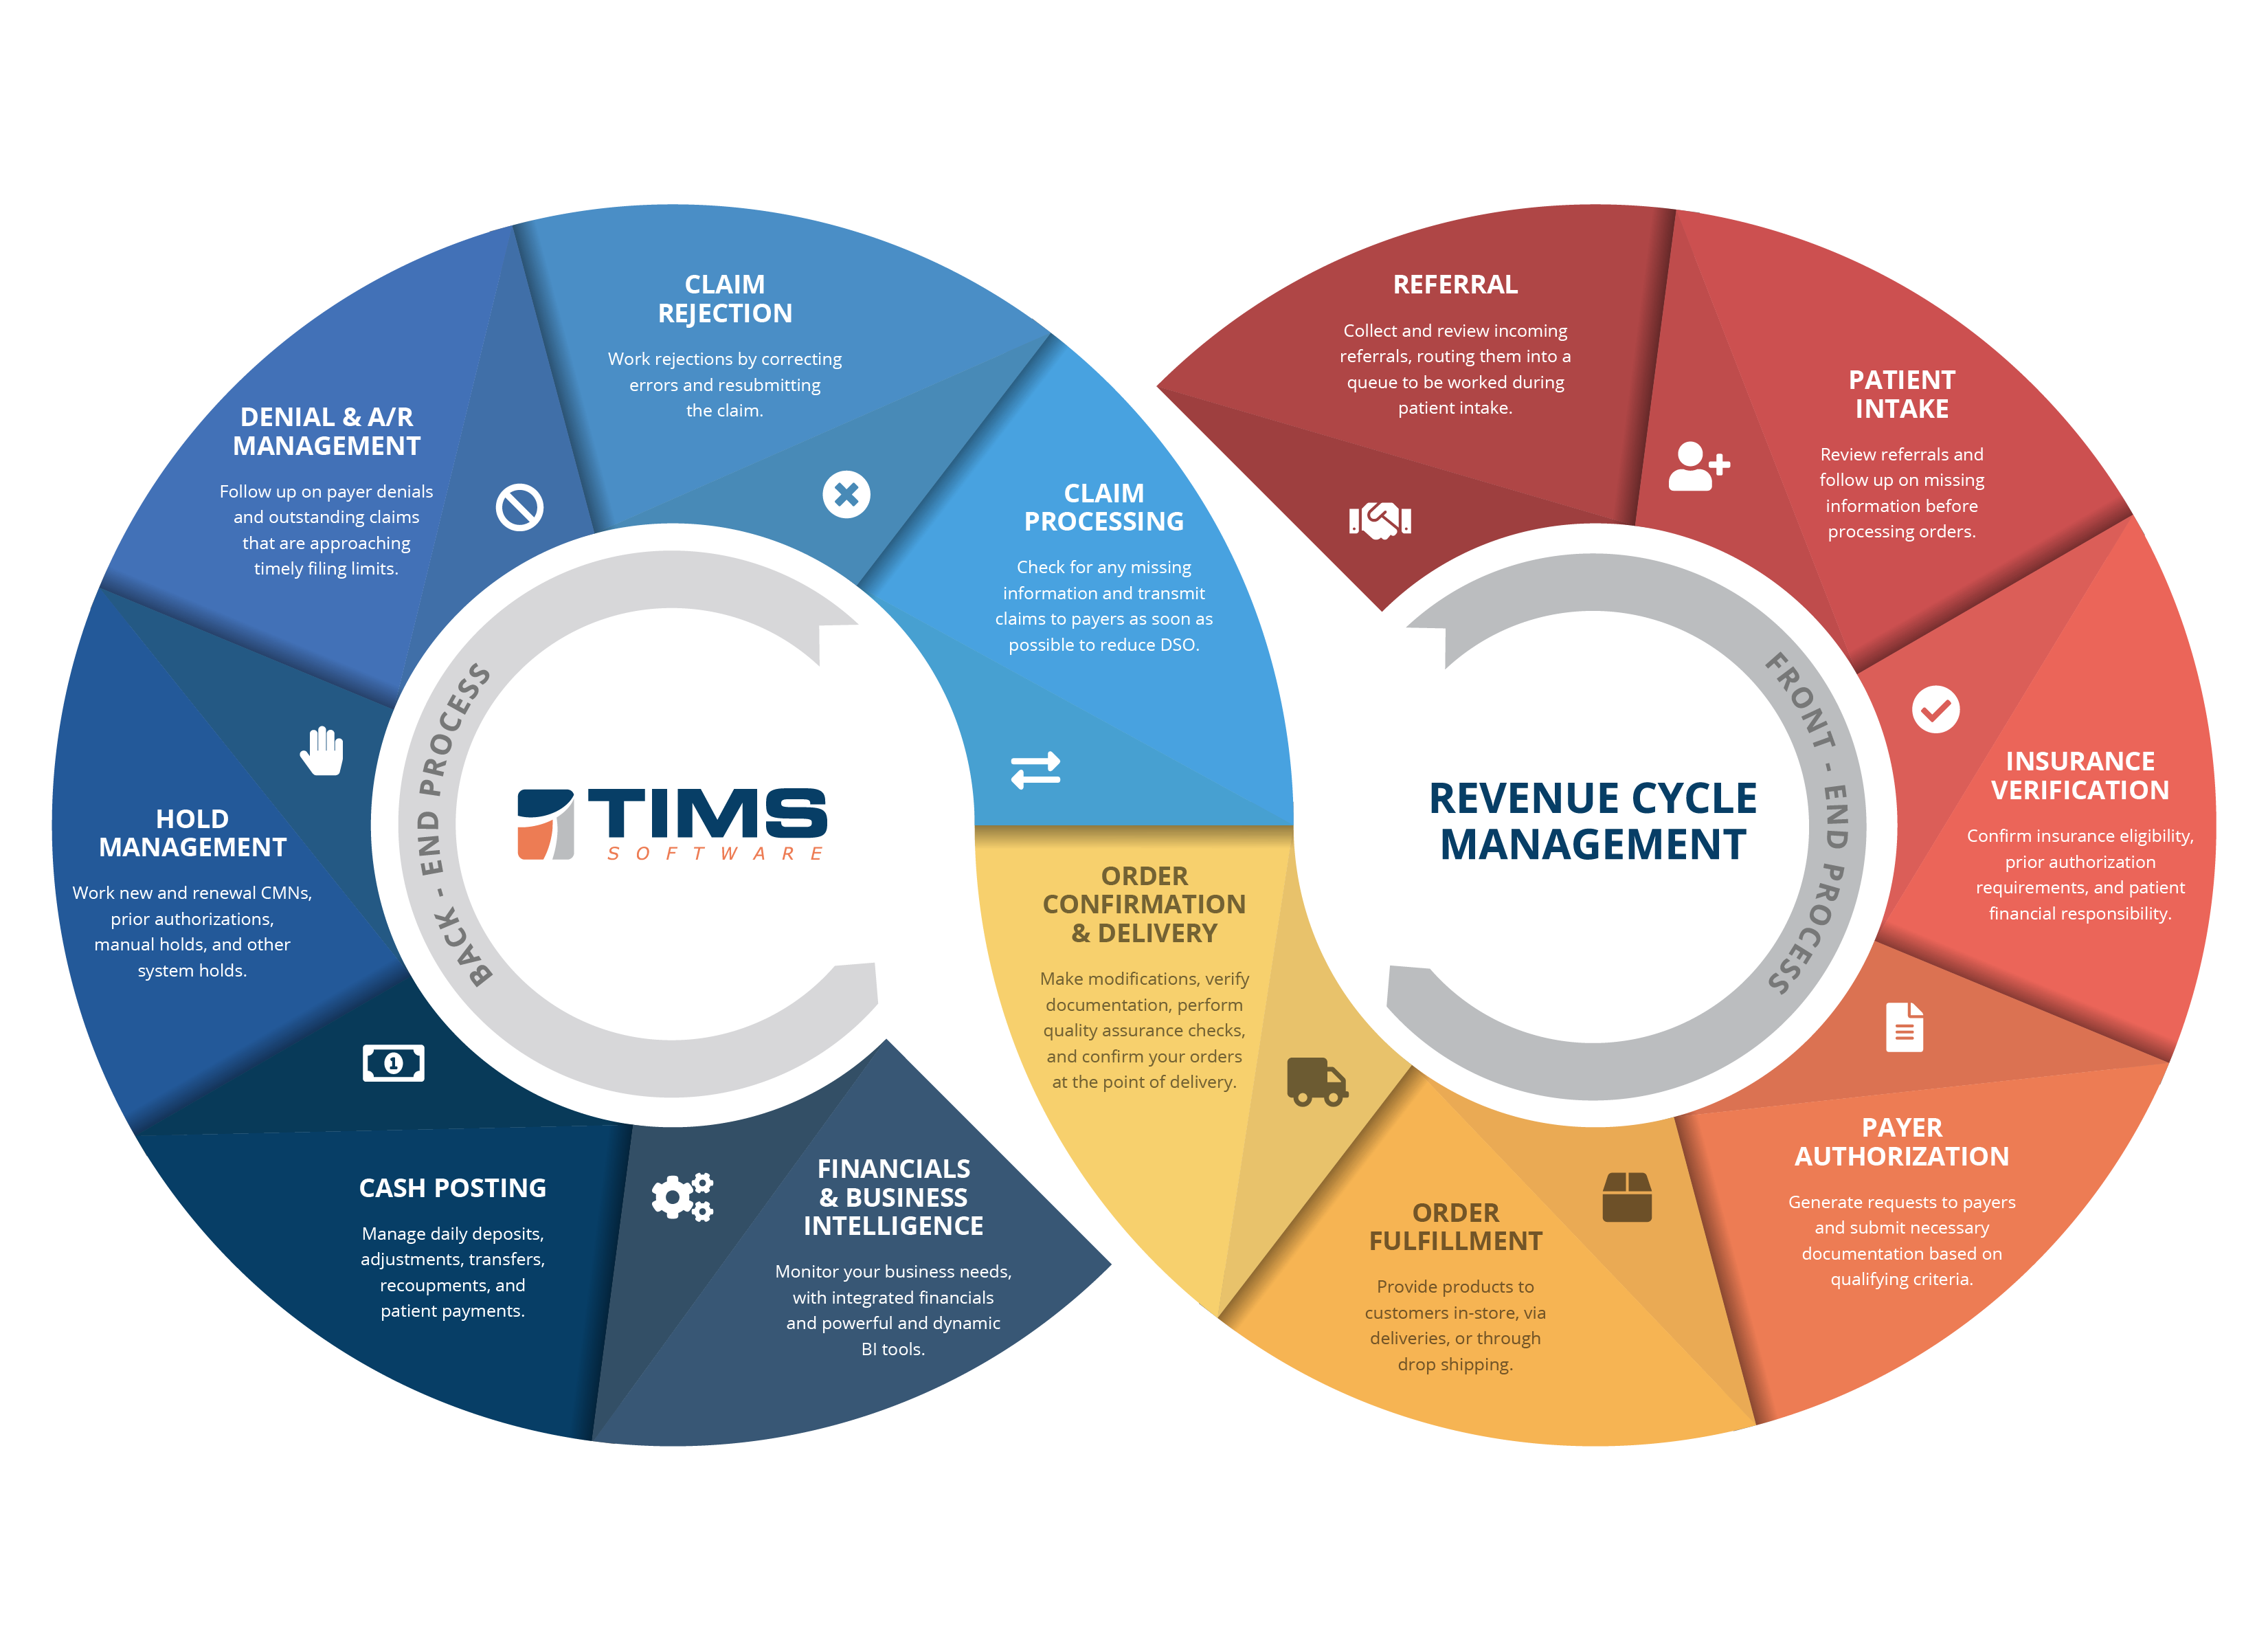 TIMS_Software_Revenue_Cycle_Management_Graphic-2_F_09_2018_Original.png